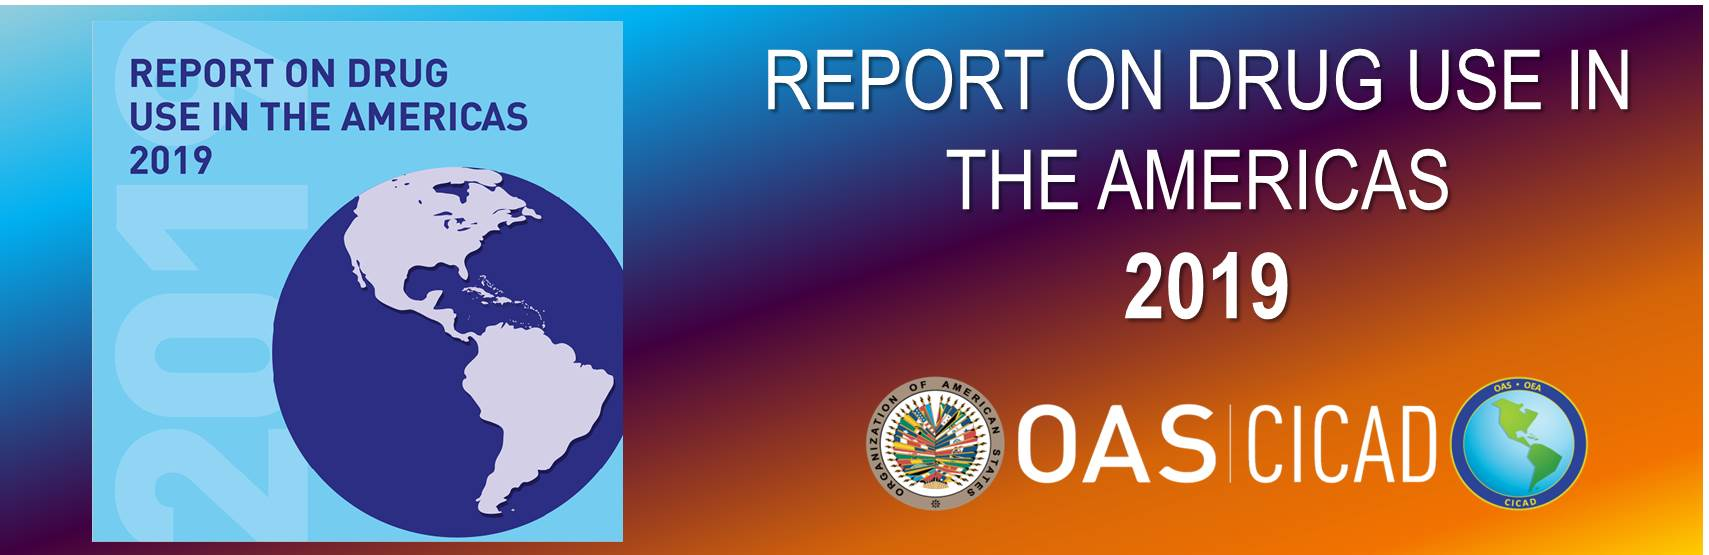 Report on Drug Use 2019